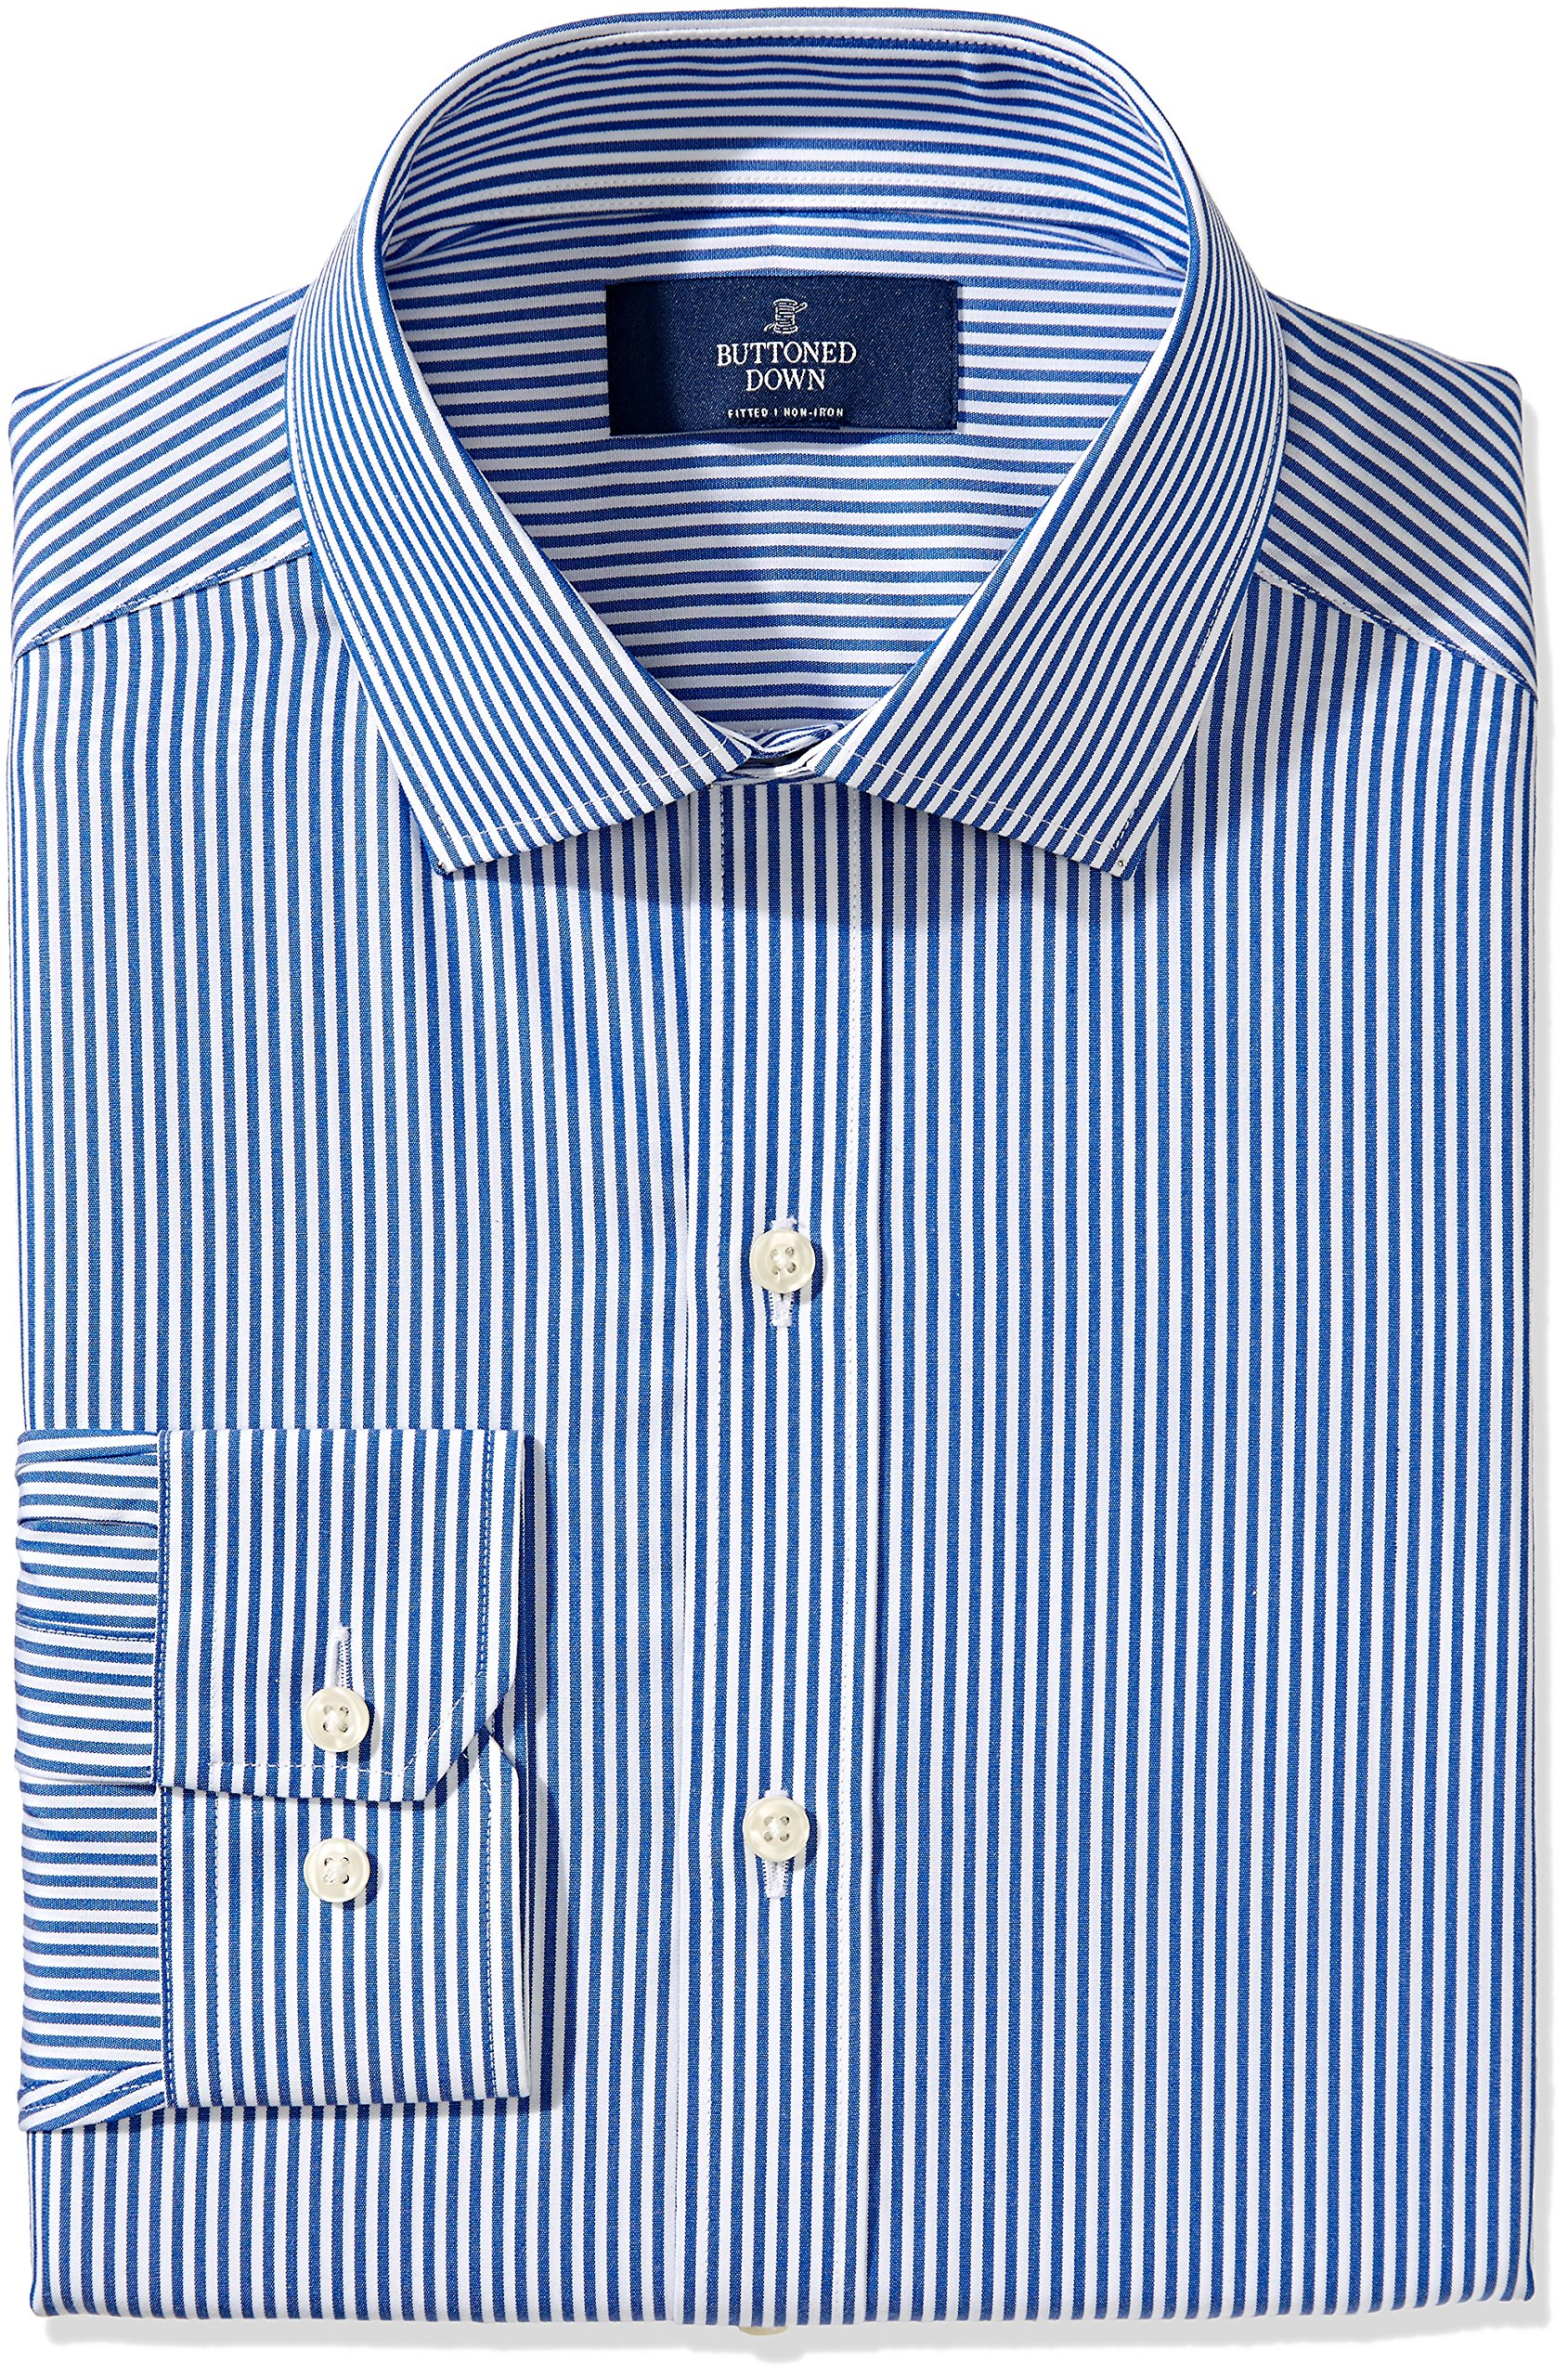 Buttoned Down Men's Fitted Spread-Collar Non-Iron Dress Shirt, Blue Bengal Stripe, 17.5'' Neck 36'' Sleeve